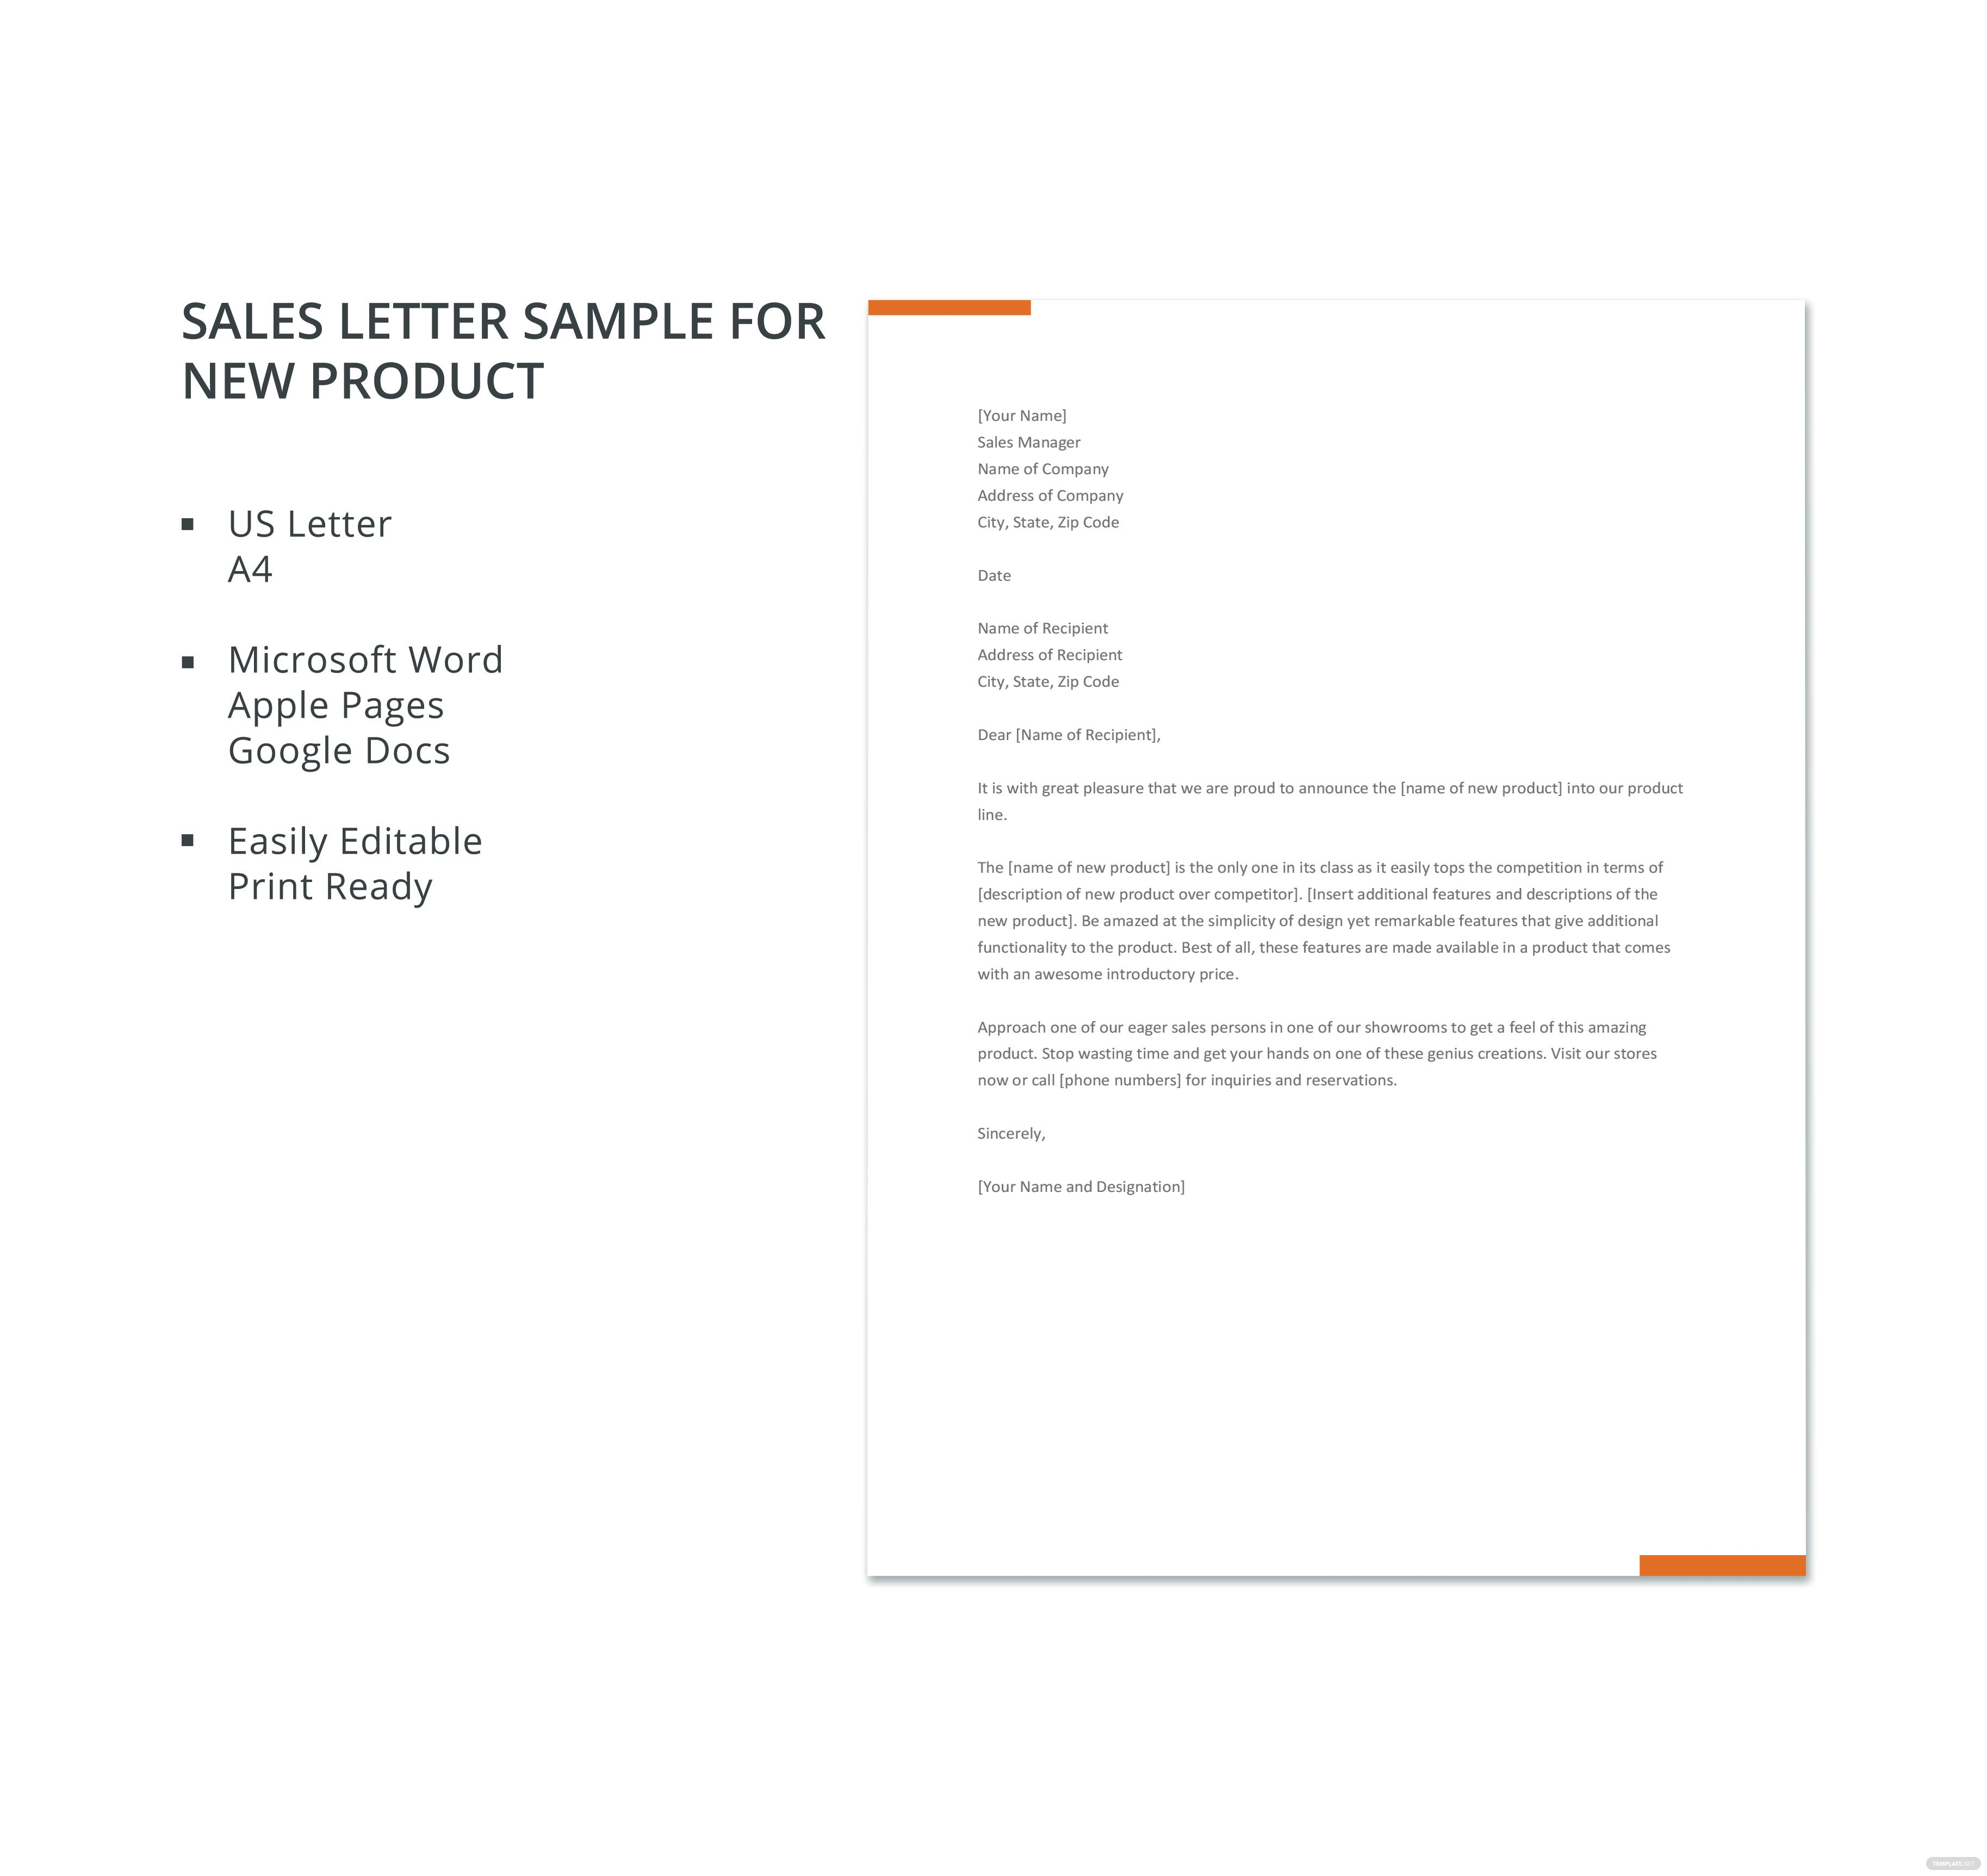 sales letter sample for new product template in microsoft